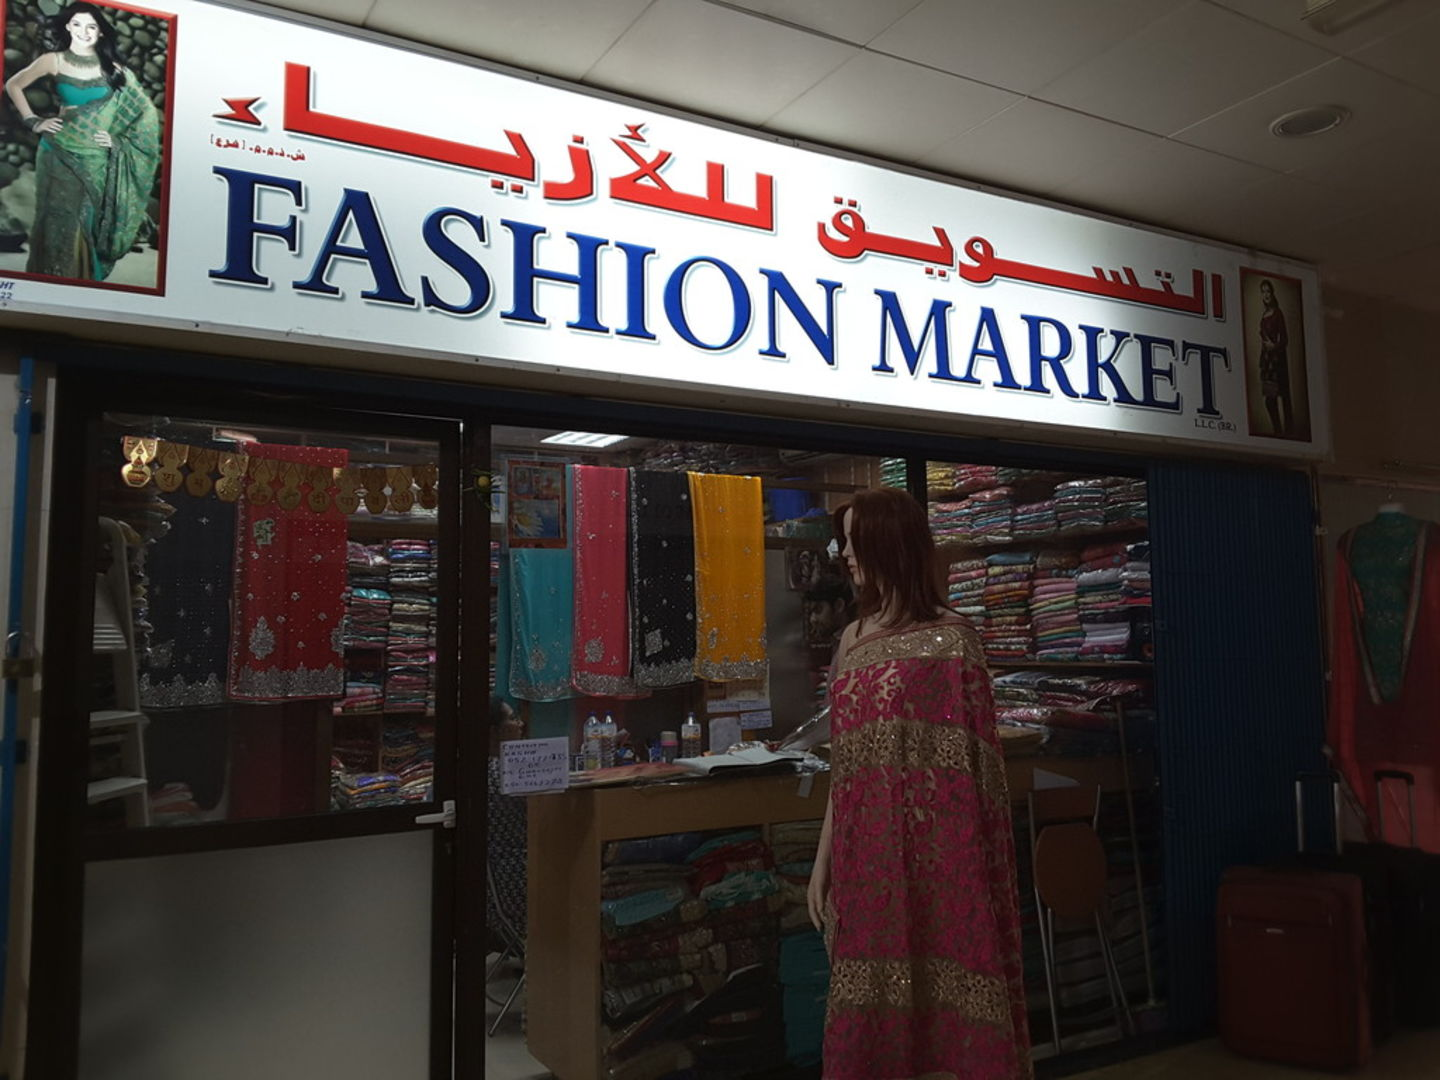 HiDubai-business-fashion-market-b2b-services-distributors-wholesalers-meena-bazar-al-souq-al-kabeer-dubai-2